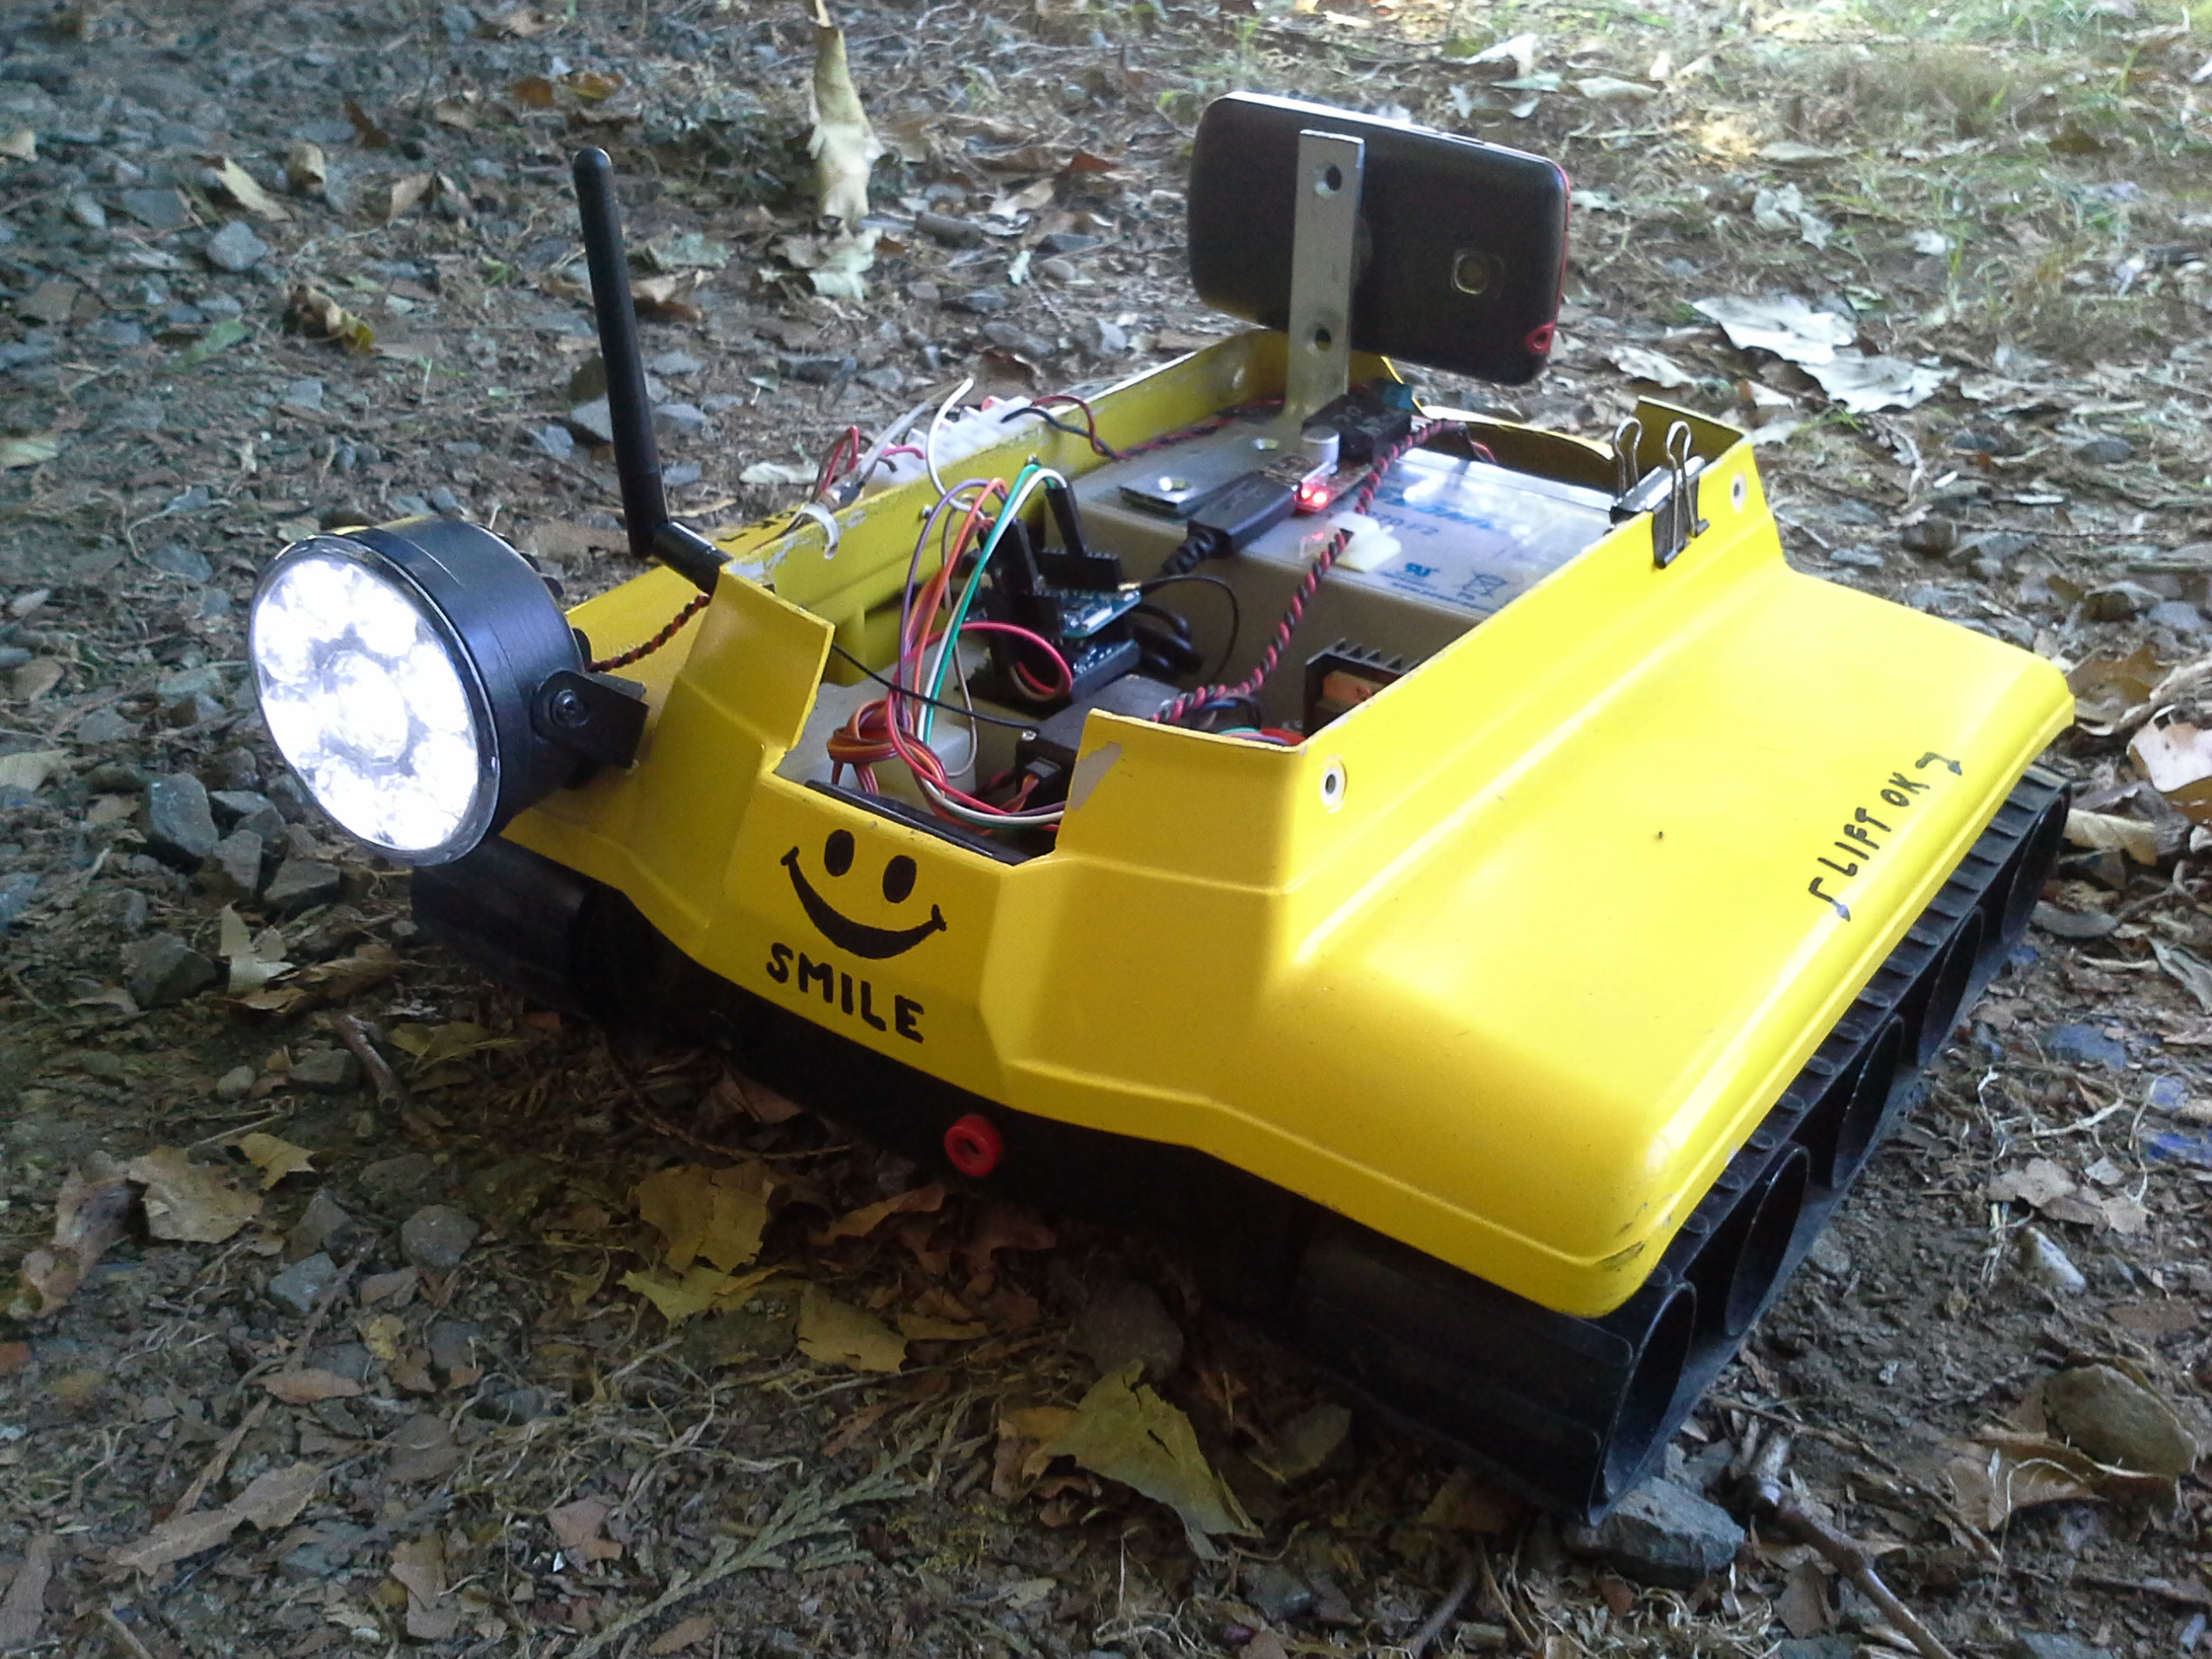 Use smartphone for FPV camera and GPS tracking smartcar